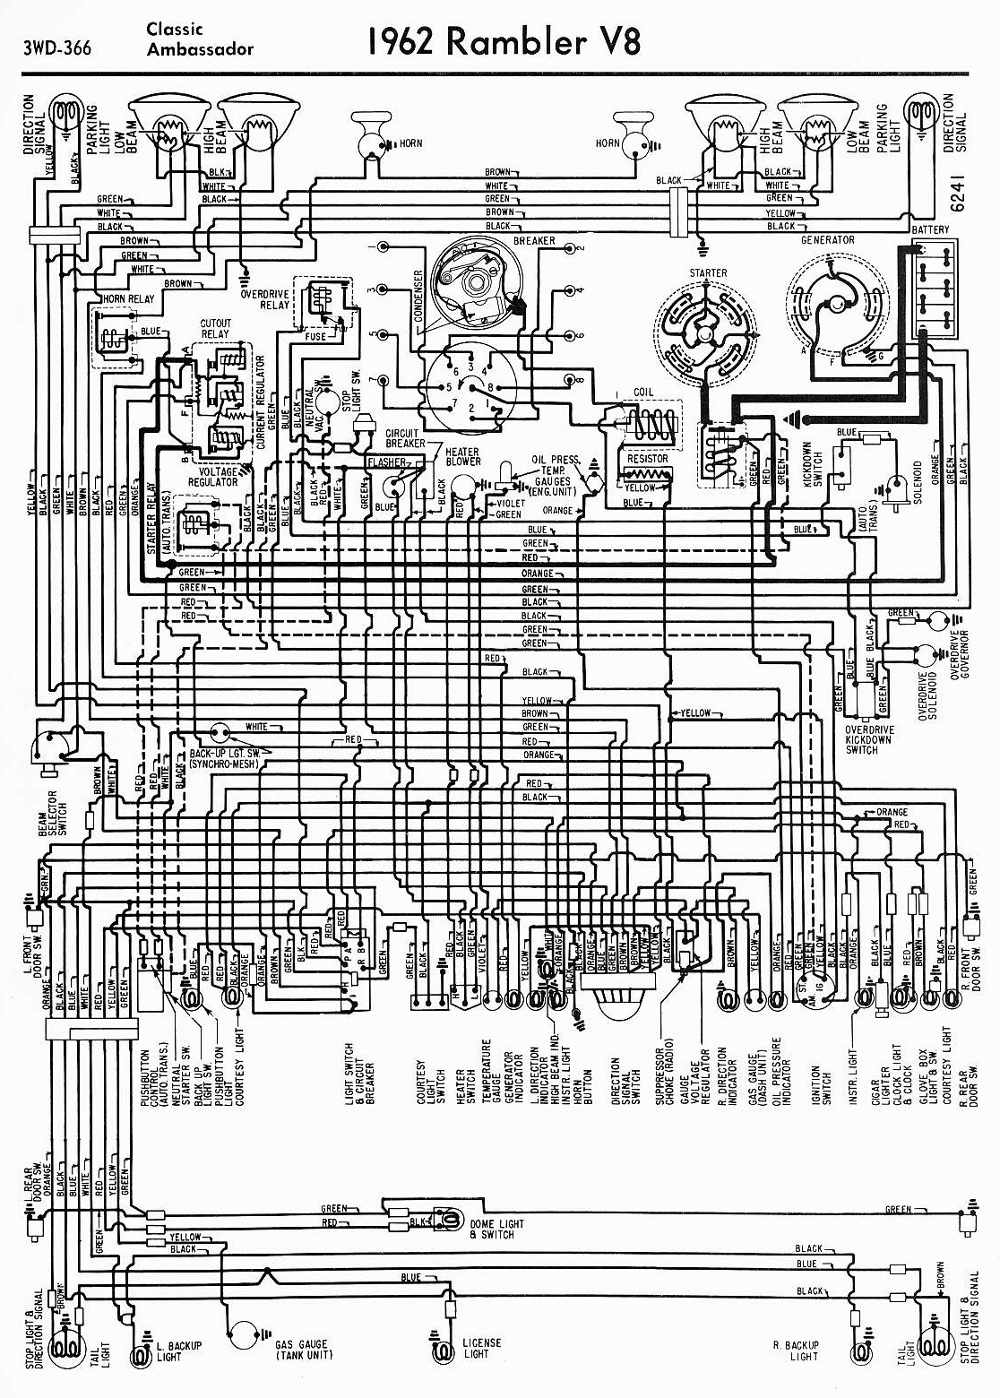 Amc Car Manuals Wiring Diagrams Pdf Fault Codes 1967 Rambler Rebel Diagram Download